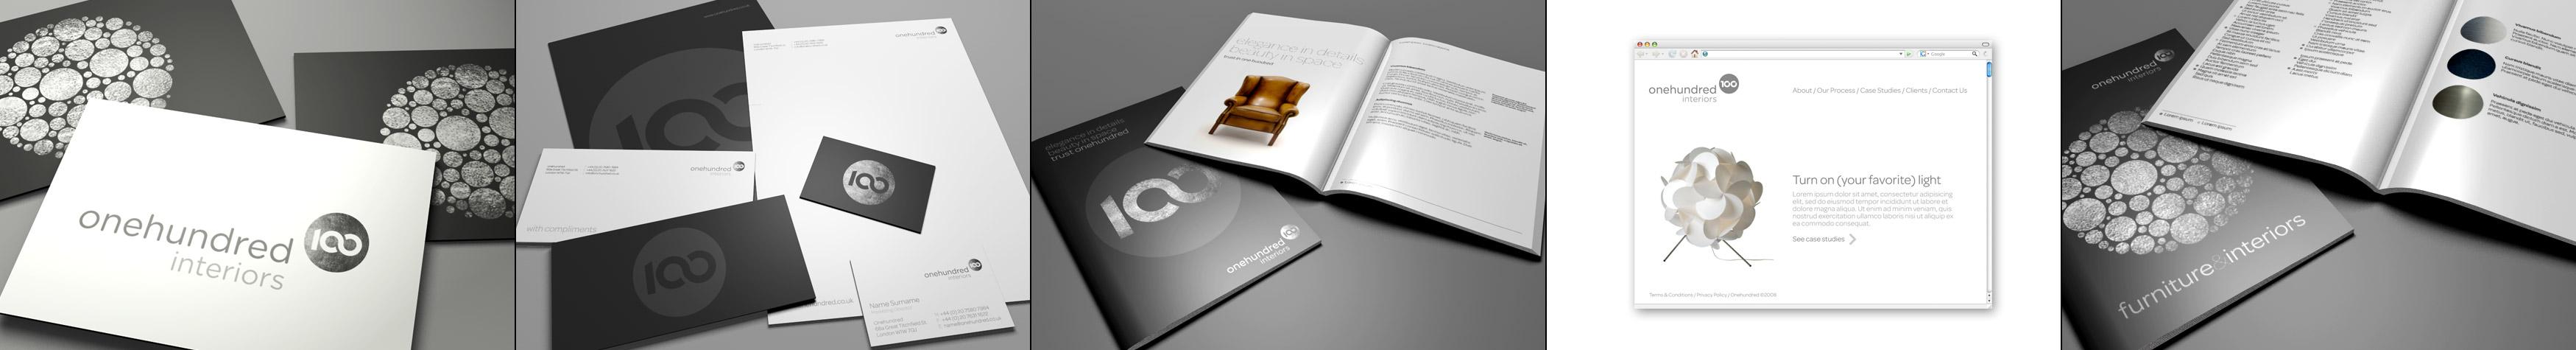 100 - onehundred - Branding | Branding Design | Brand Strategy | Brand Identity | Branding Corporate Identity | Global Branding, London, Dubai, UK